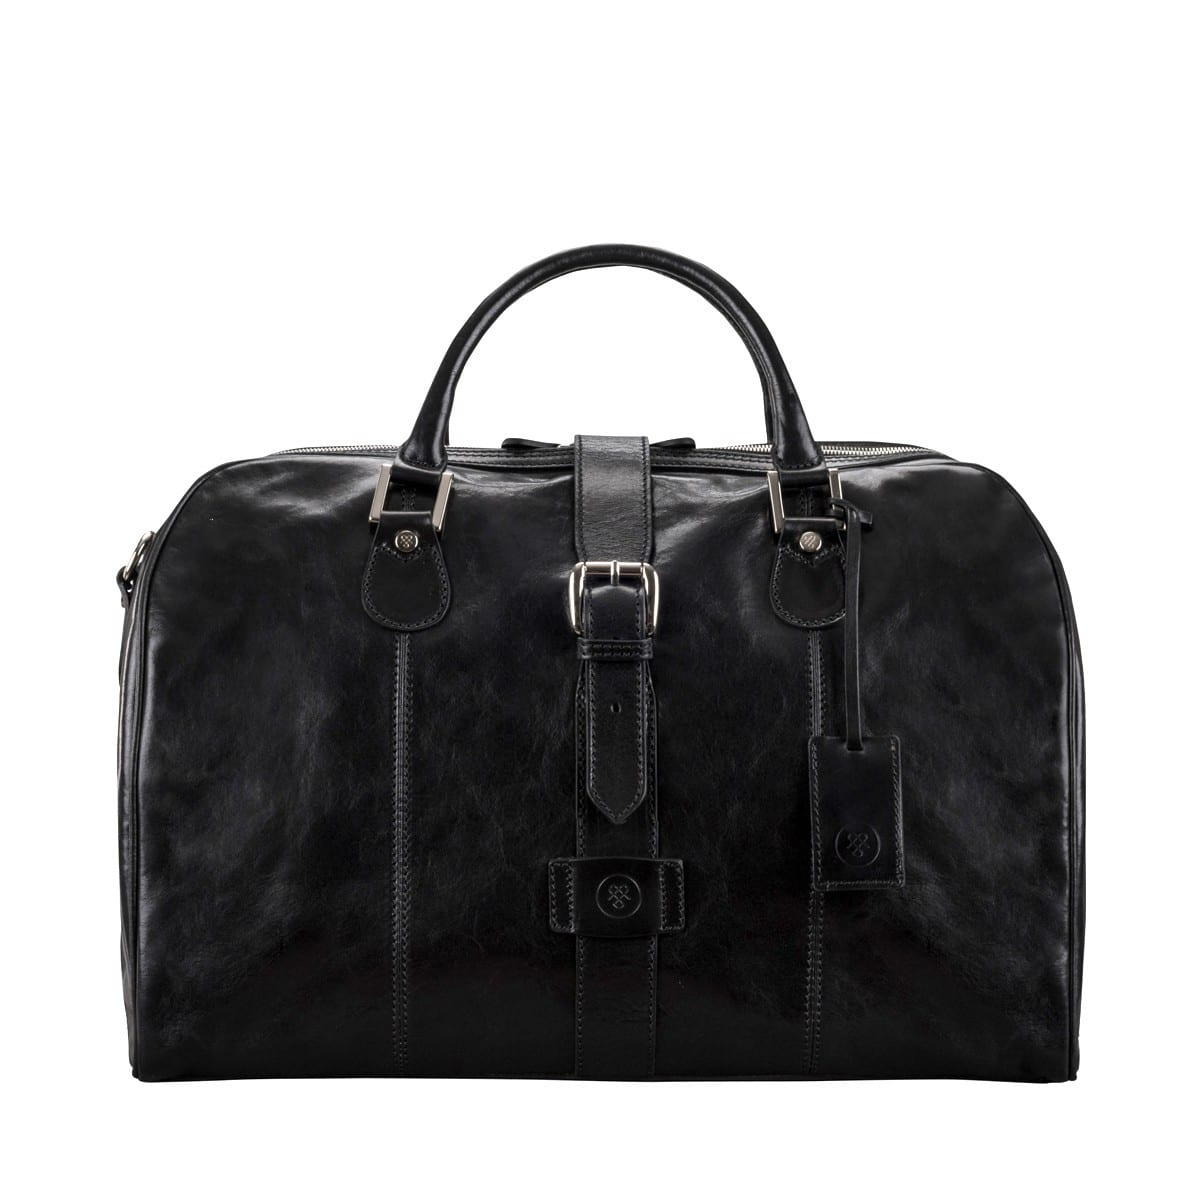 The Farini Travel Holdall Now Gifts For In Laws